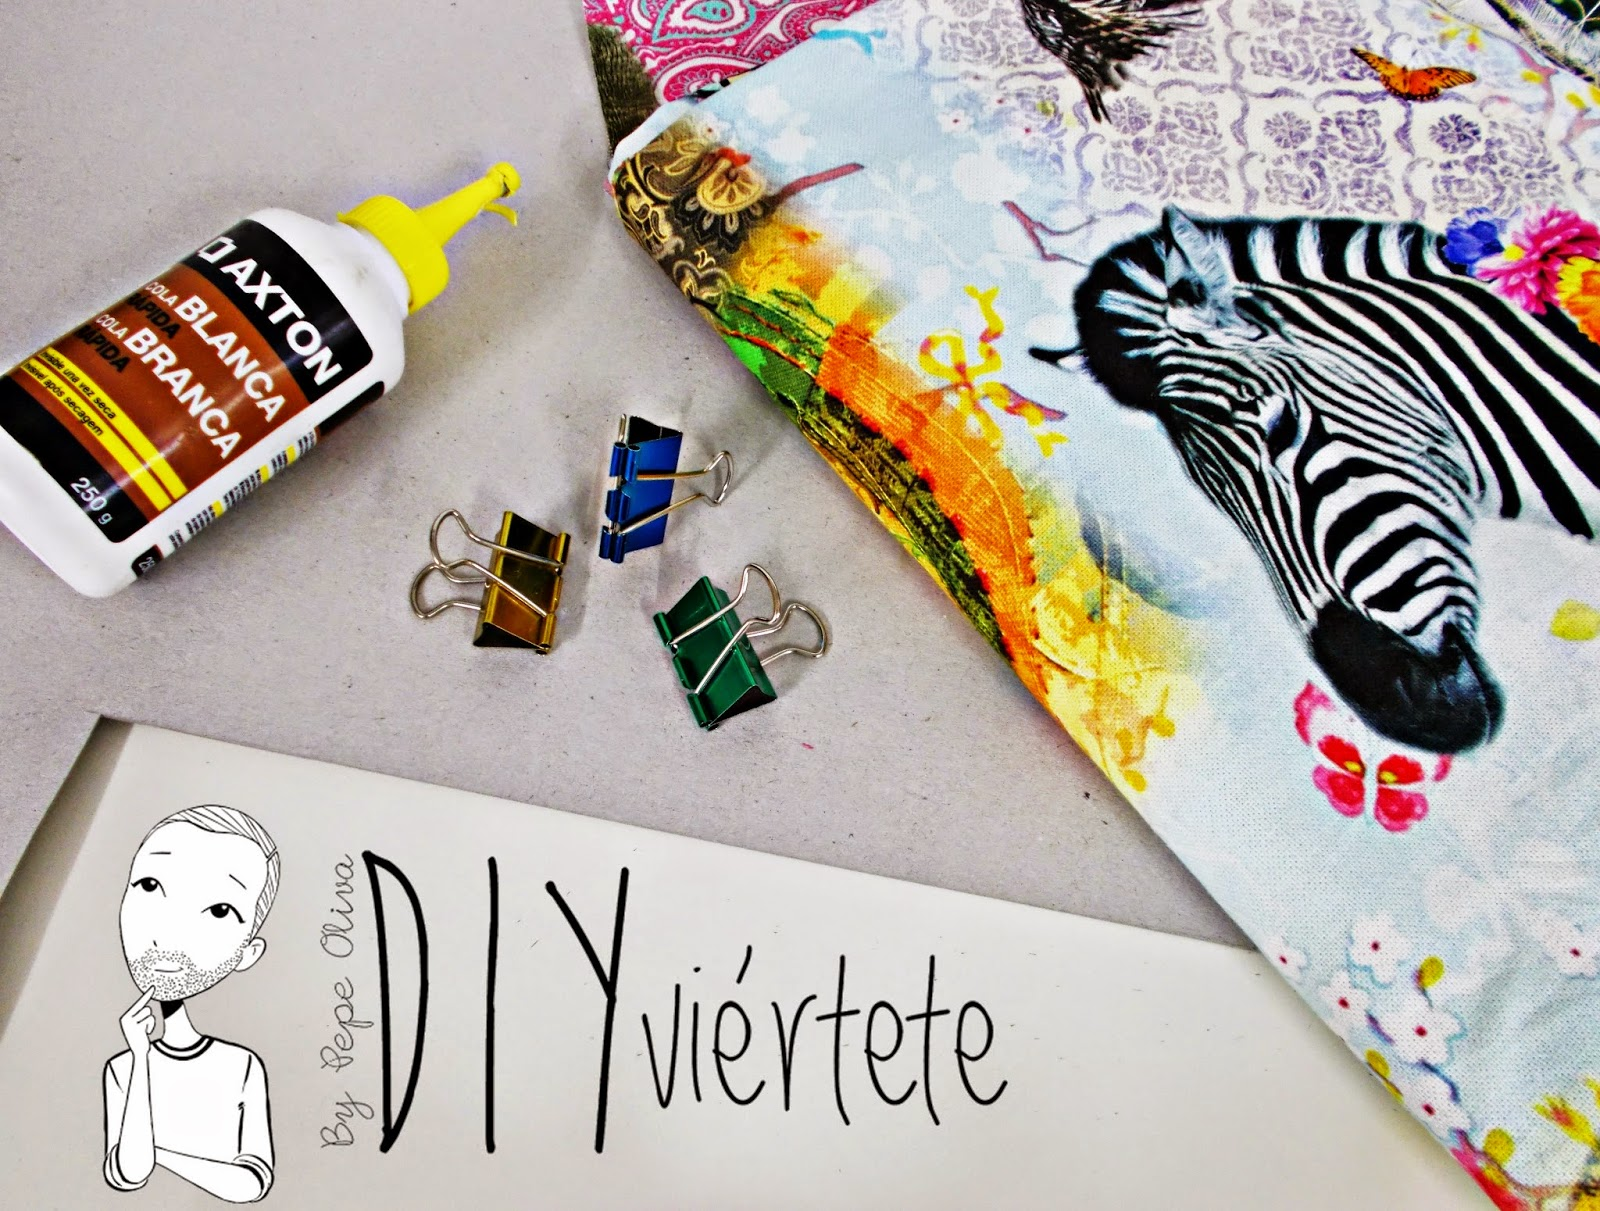 DIY-Do It Yourself-caja-cartón-selfpackaging-customizar-handbox-yodona-diyhuntersday-craftlovers-3